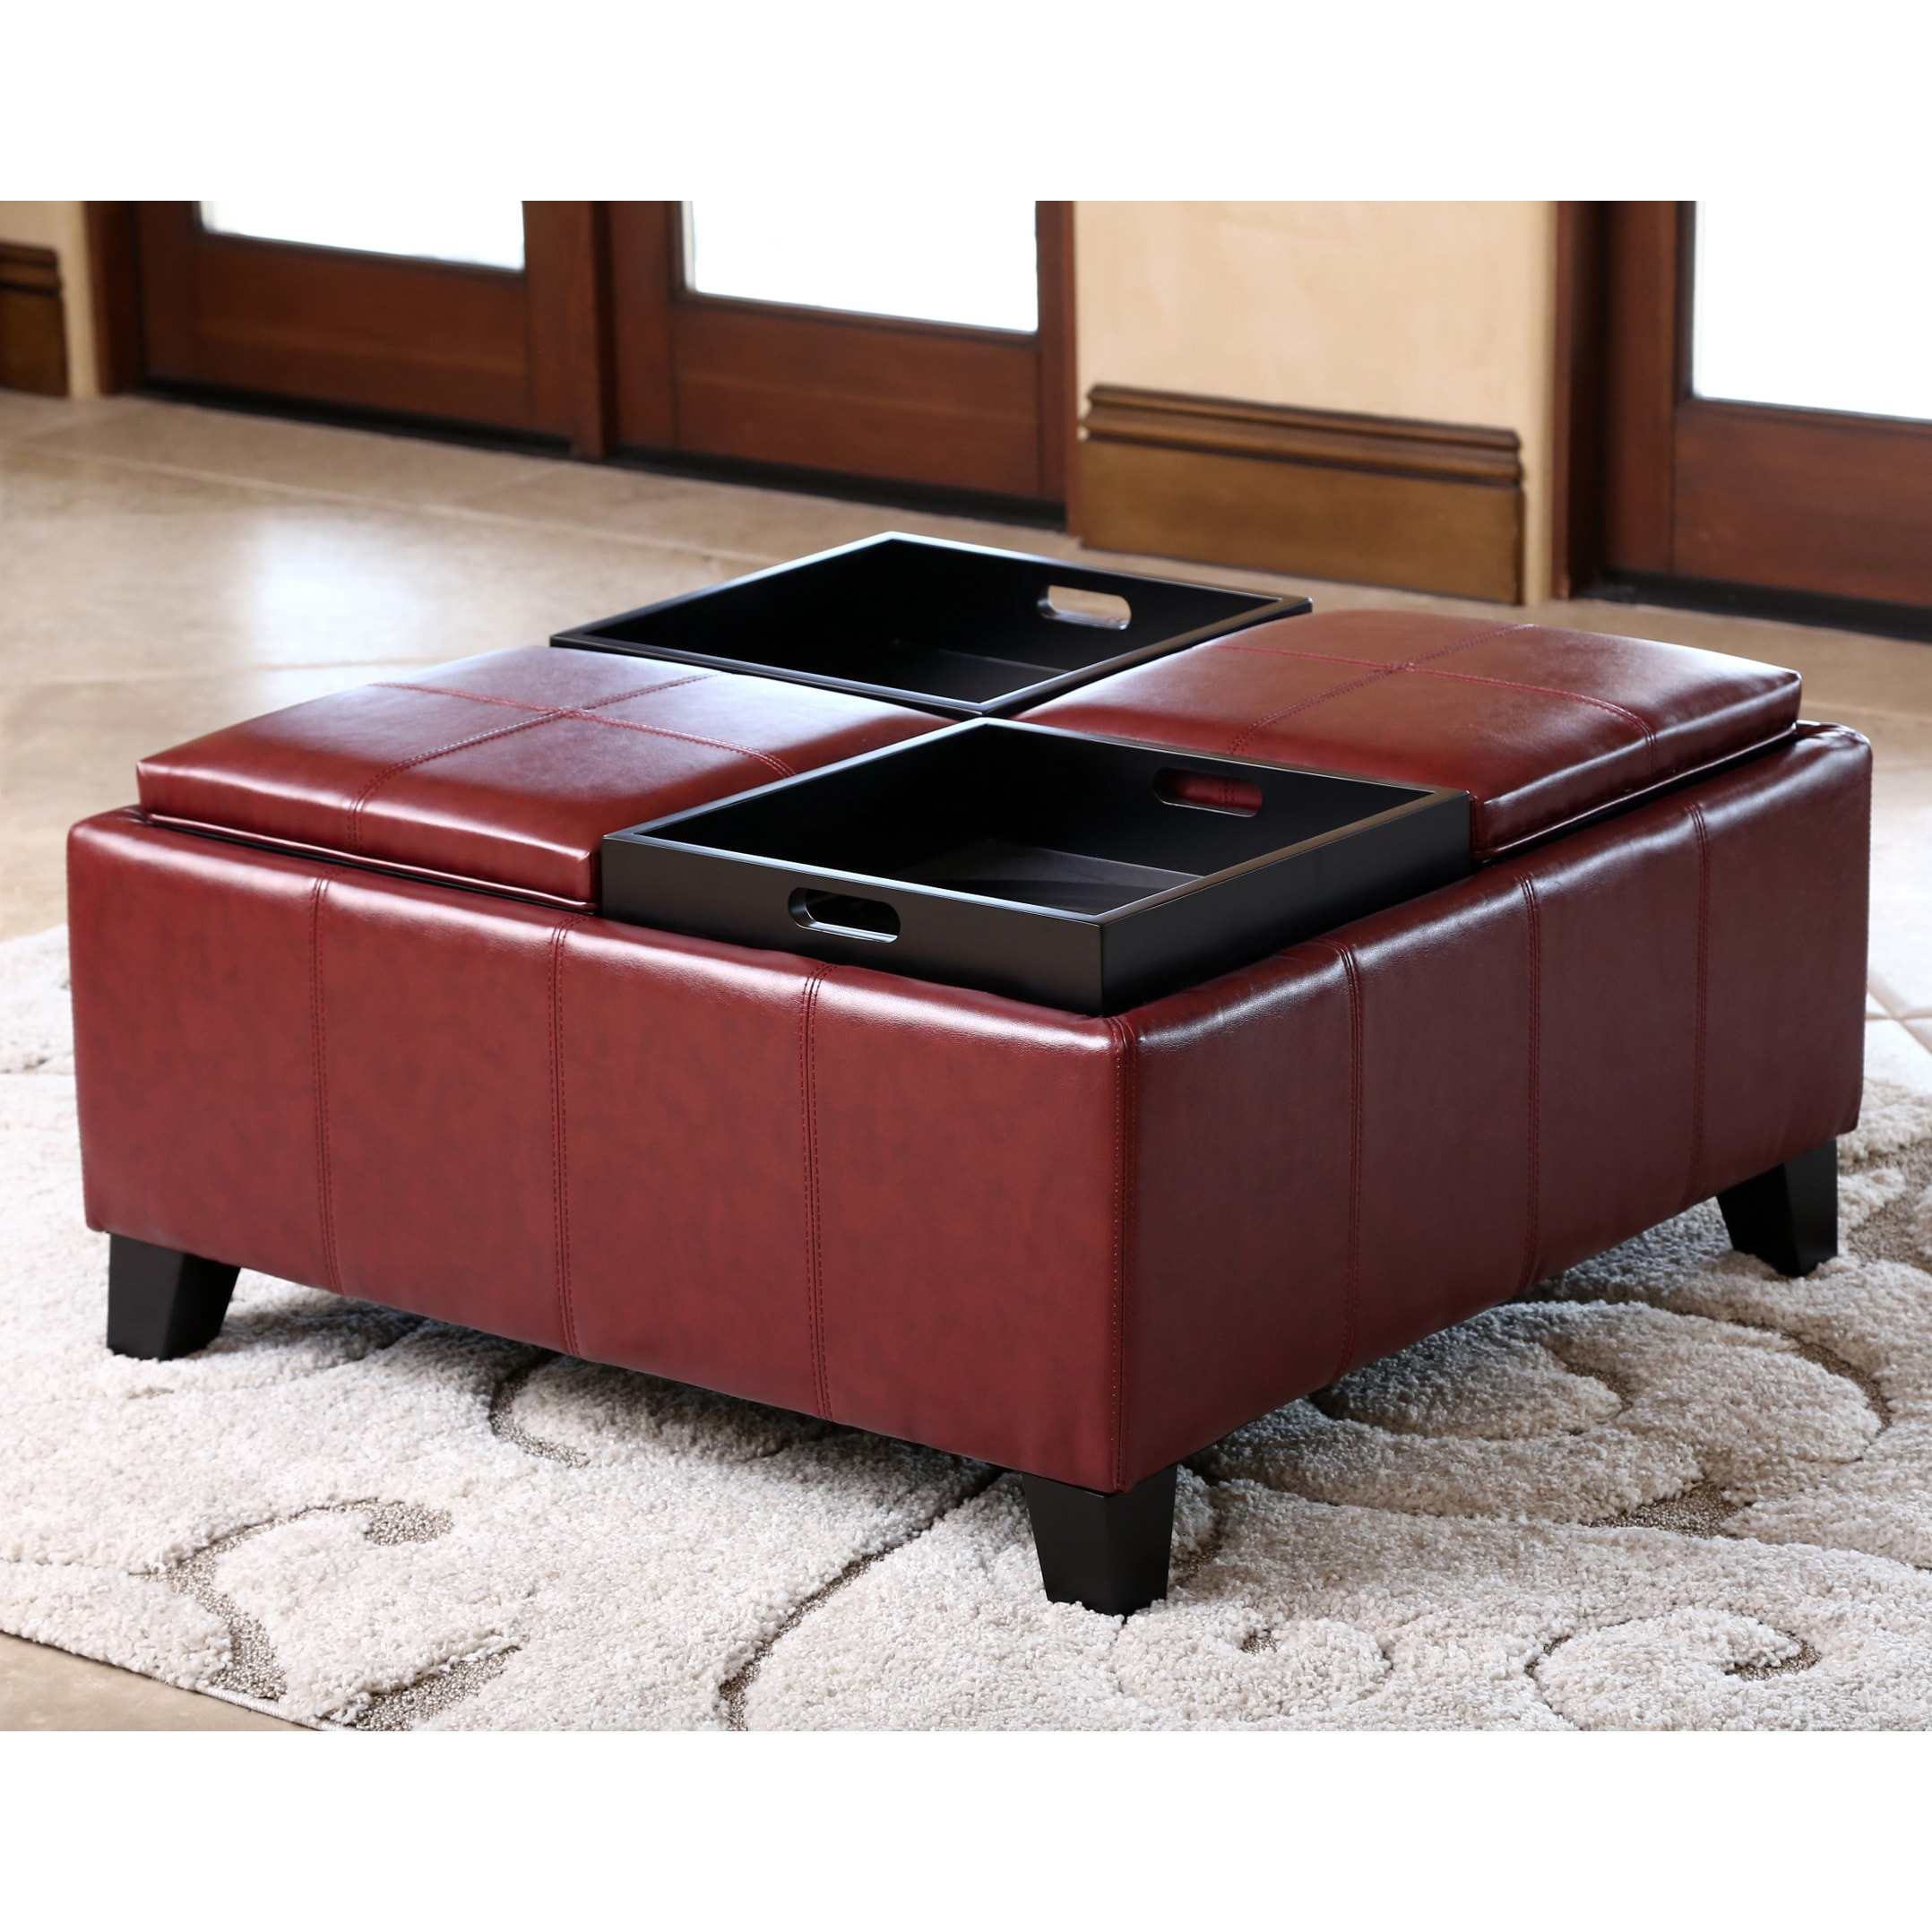 room ottoman hooker furniture cocktail urban table square elevation ltbr ottomancocktail iteminformation living